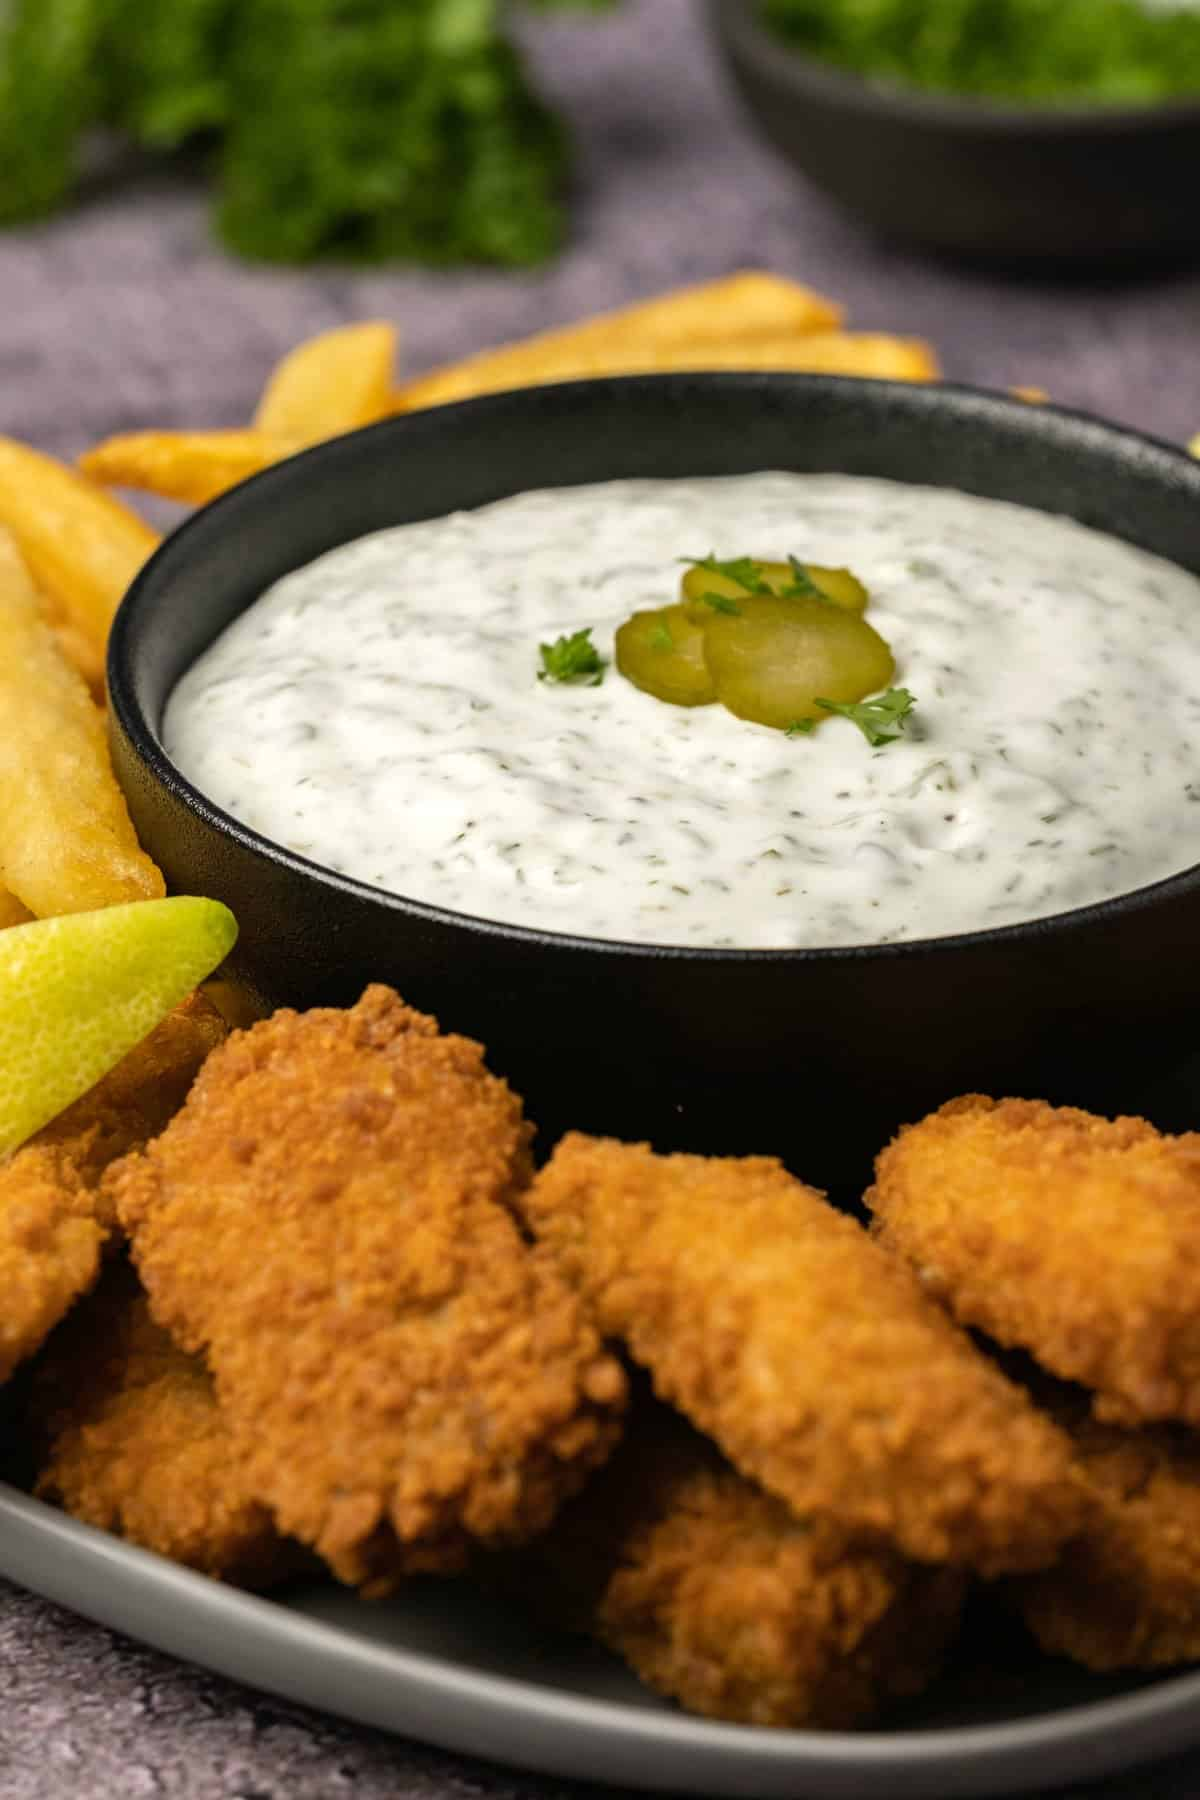 Tartar sauce in a black bowl with nuggets and fries.